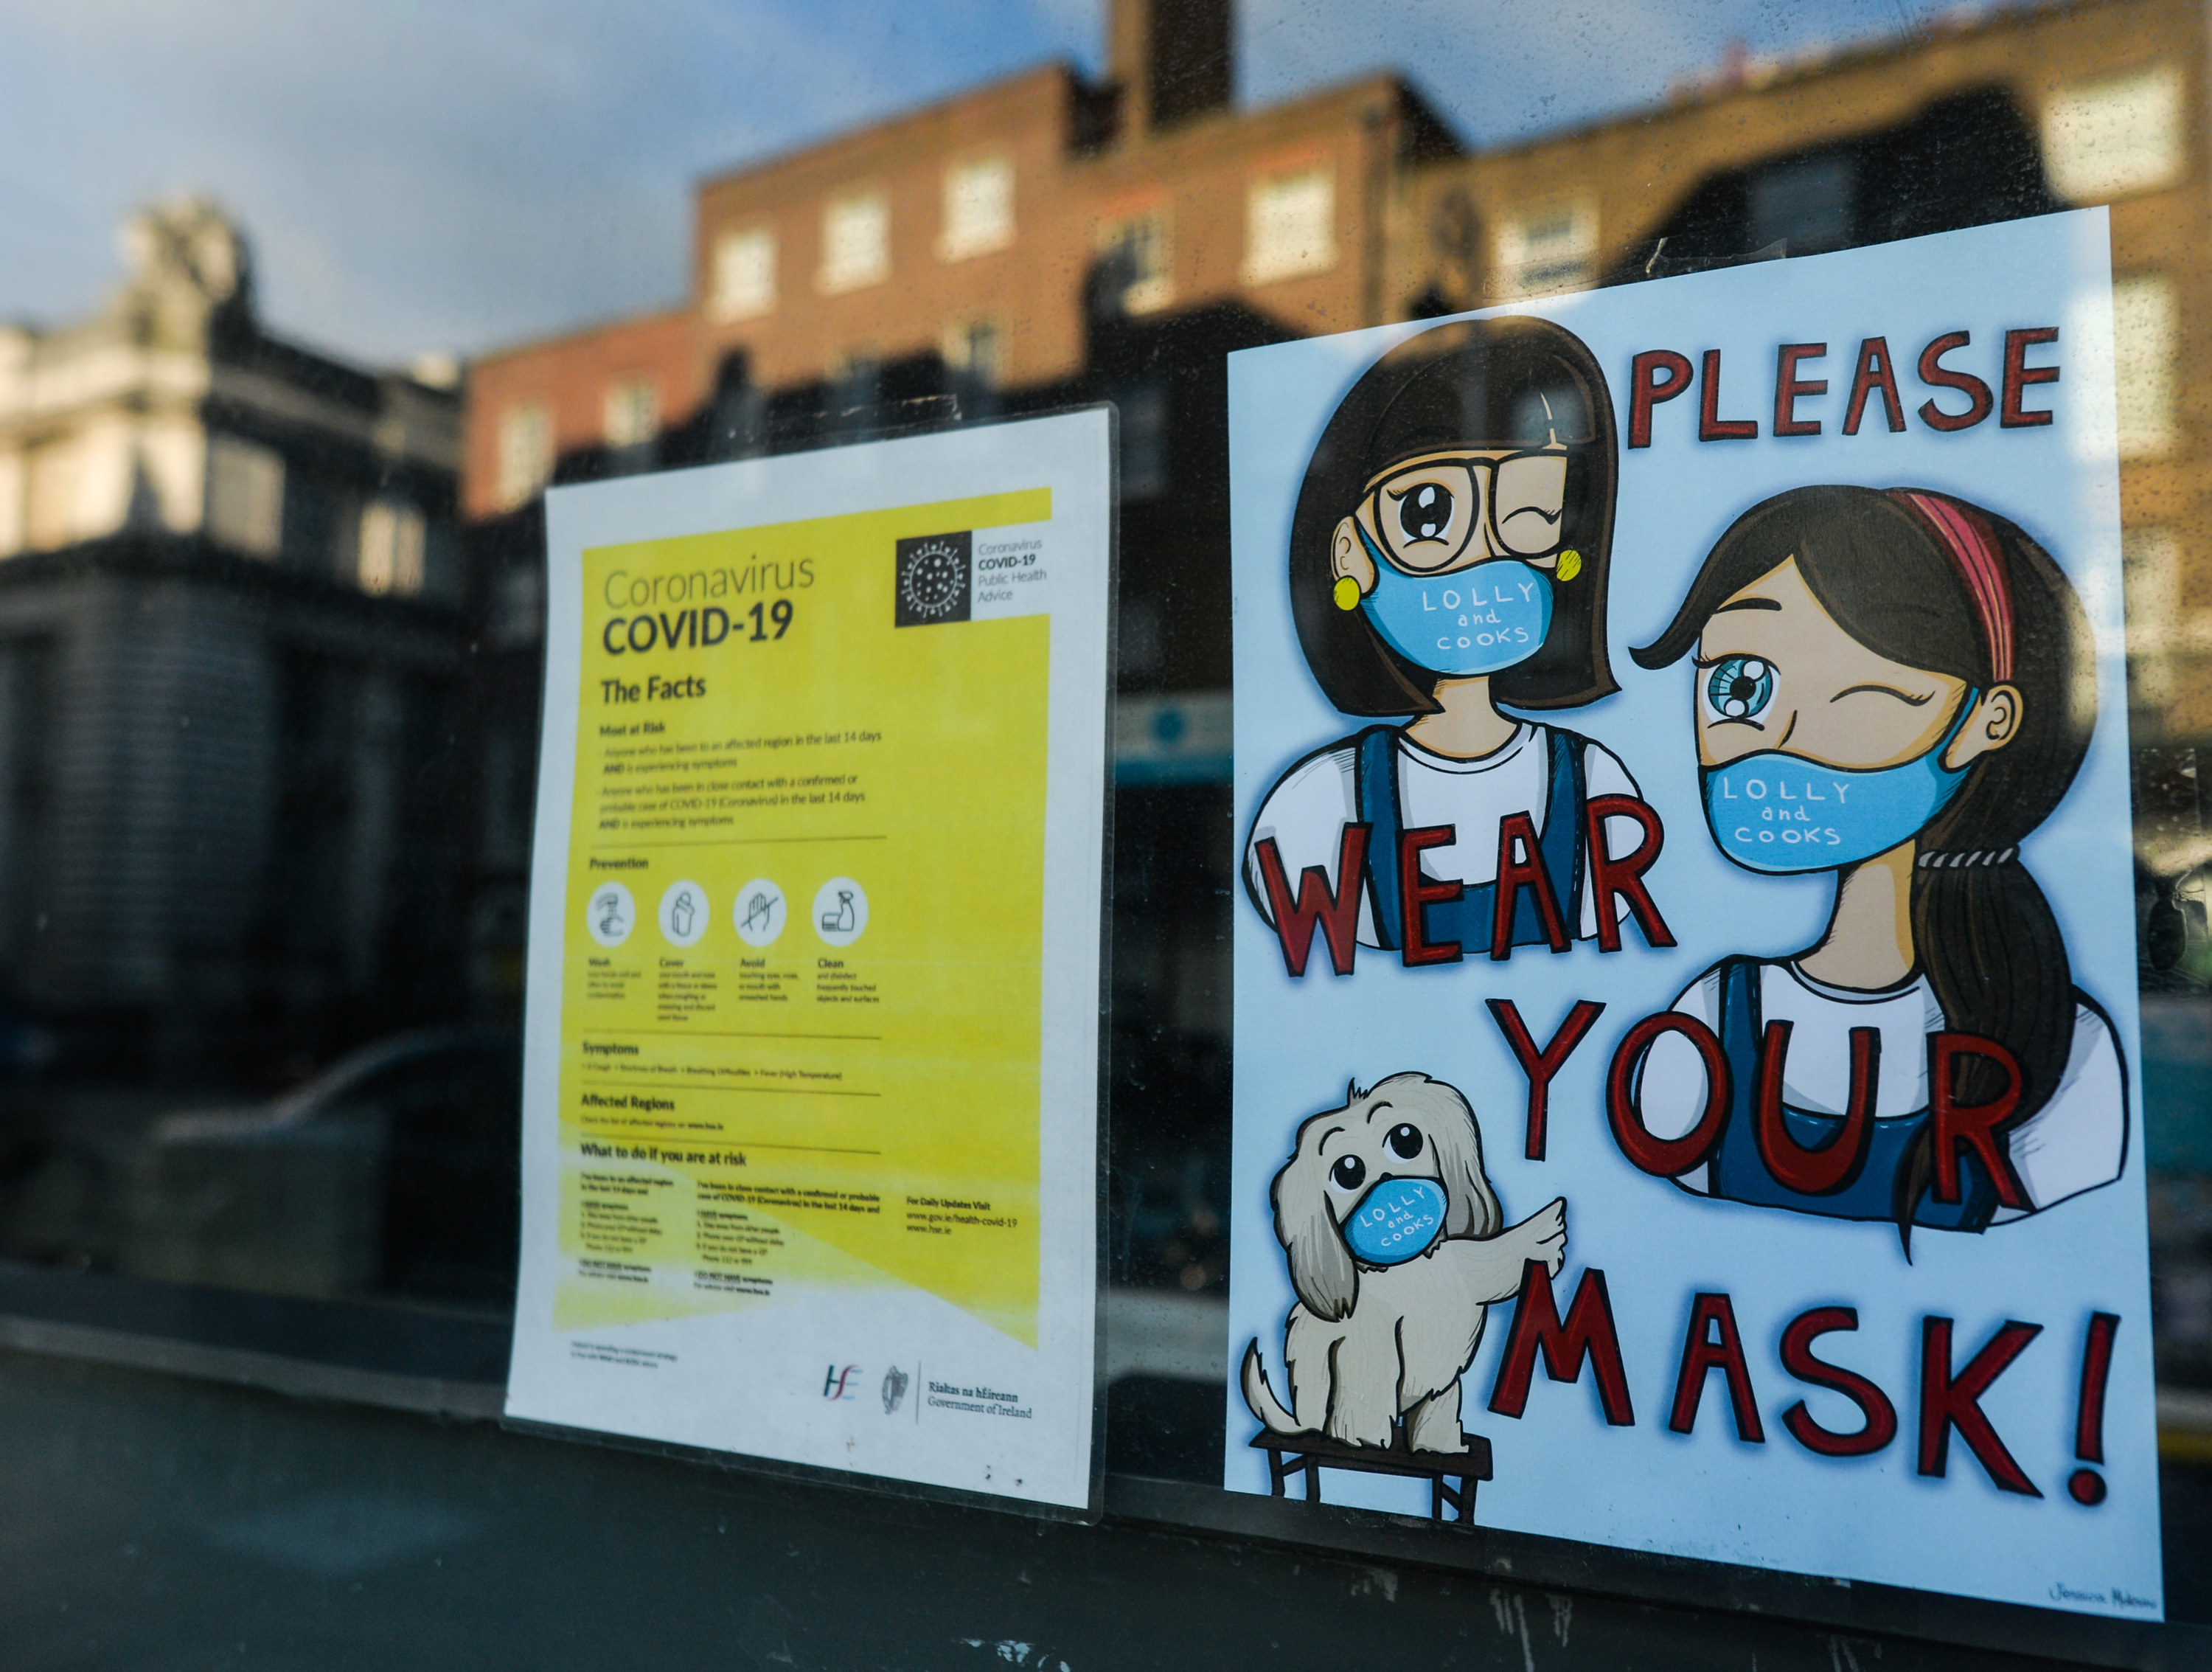 Two signs in a window telling people the facts about COVID-19 and encouraging people to wear masks